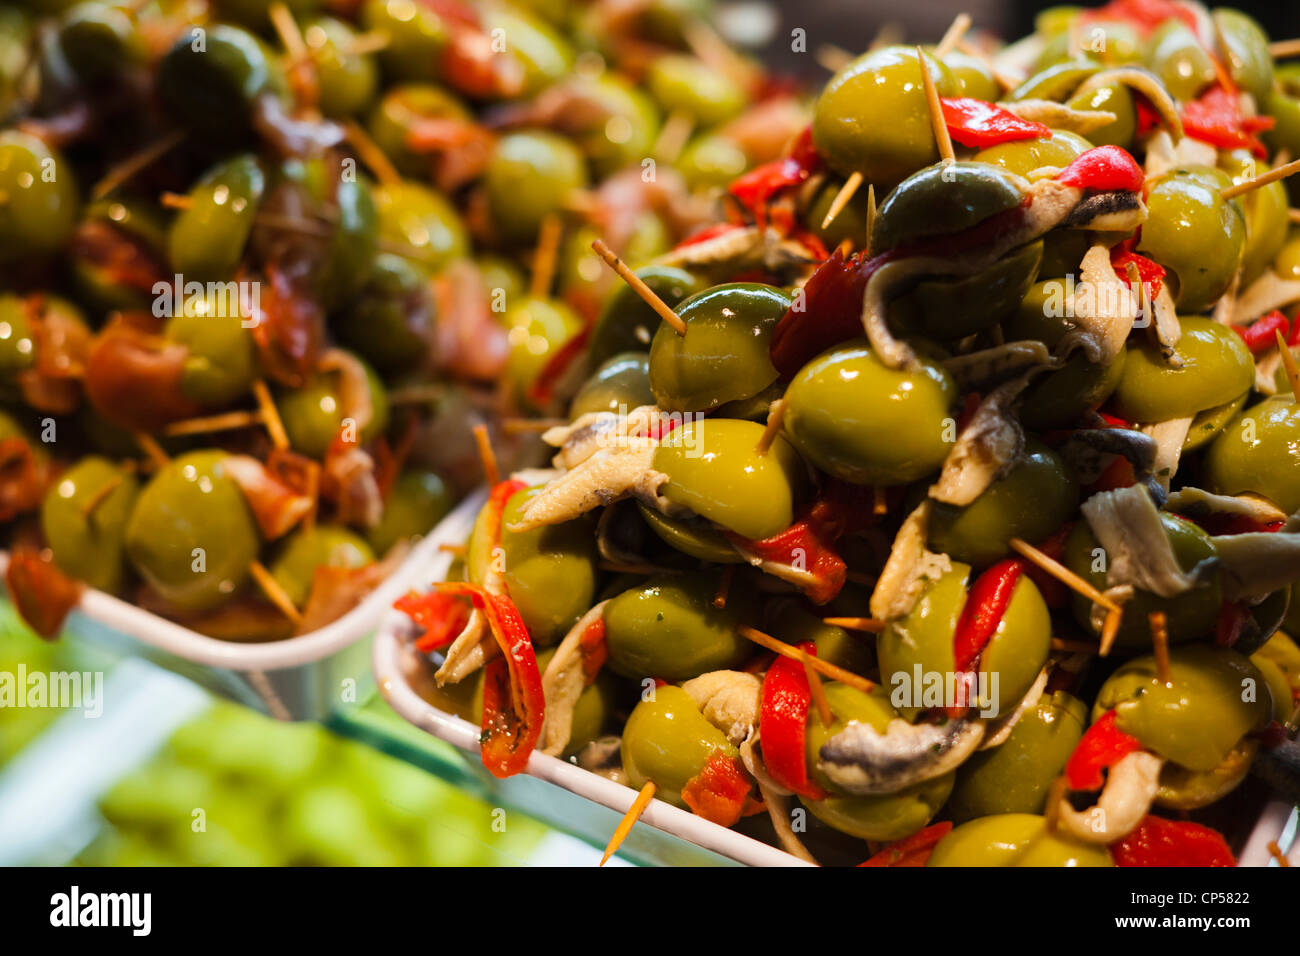 Spain, Madrid, Plaza de San Miguel, Mercado de San Miguel, artisan food marketplace, tapas made with stuffed olives - Stock Image